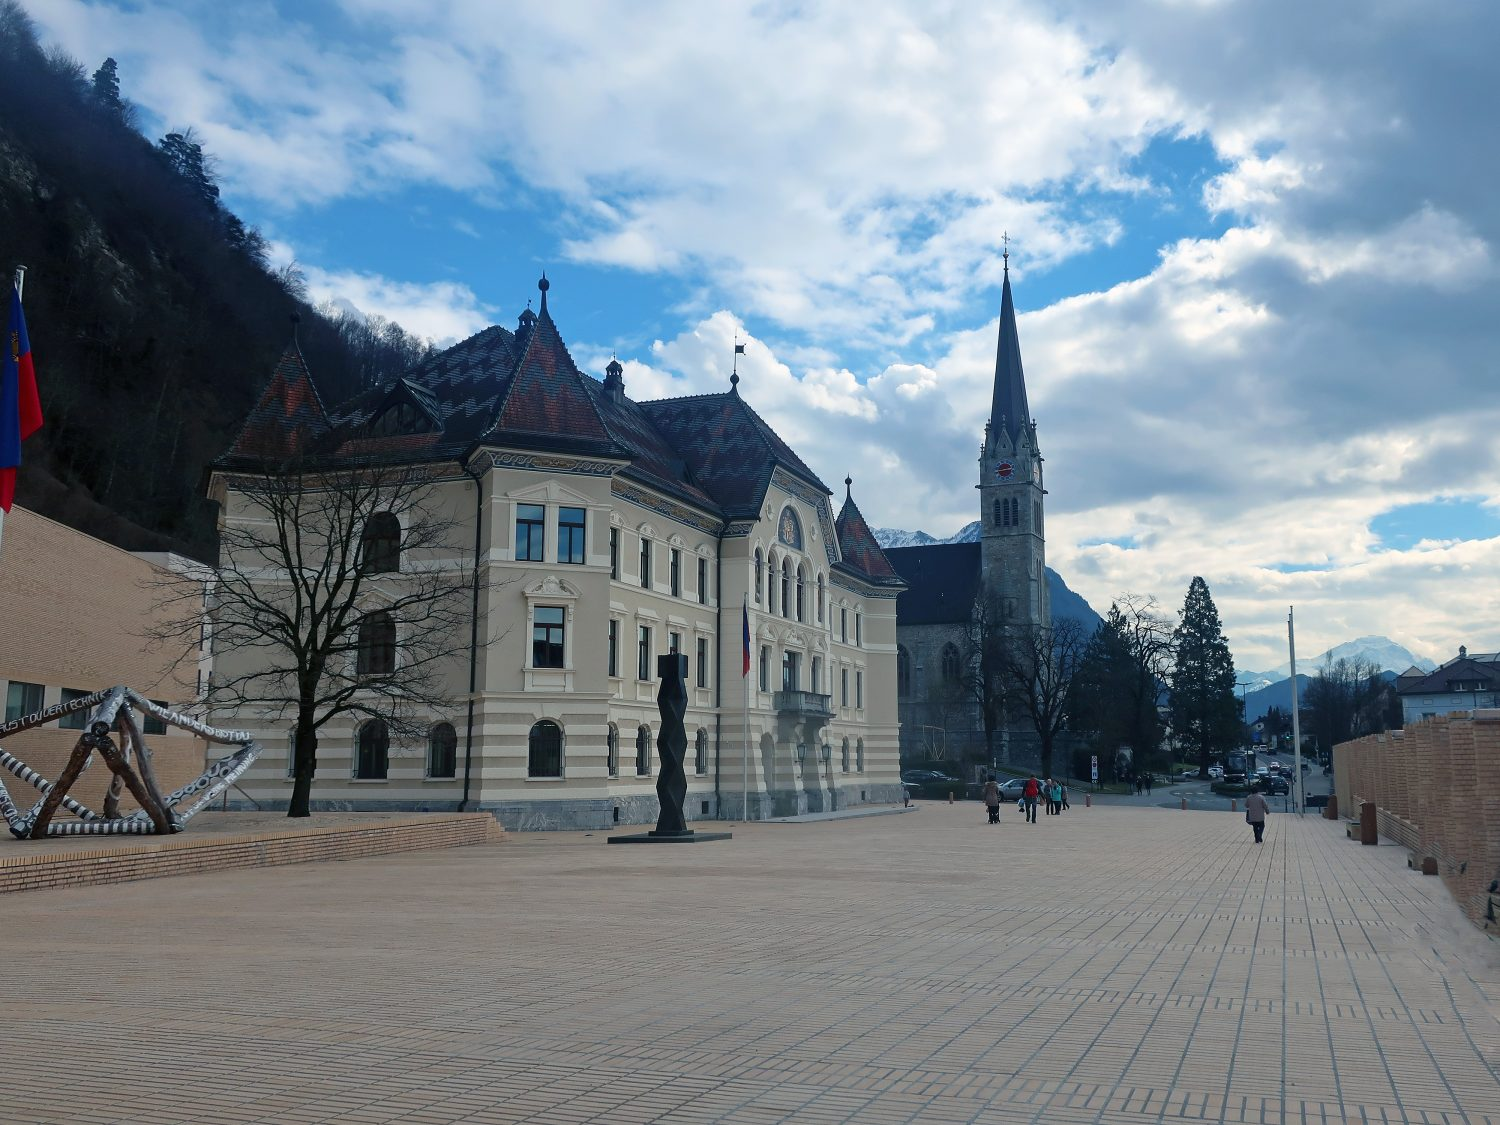 Fürstliche Ferien in Liechtenstein: 10 Highlights in Vaduz